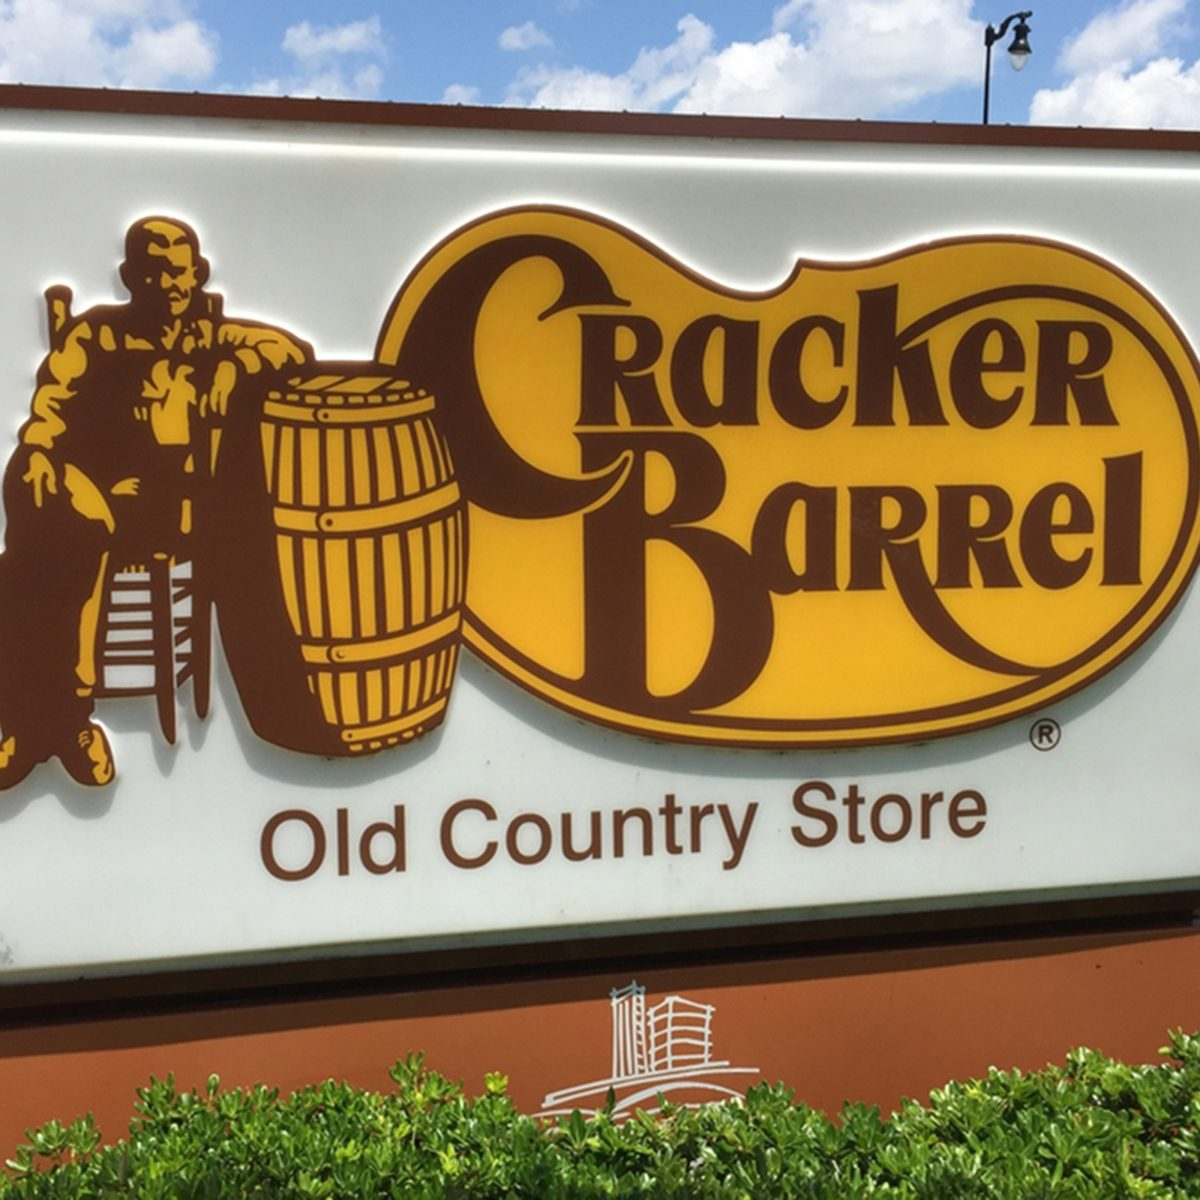 Cracker Barrel Old Country Stores are near freeway exits throughout the USA.